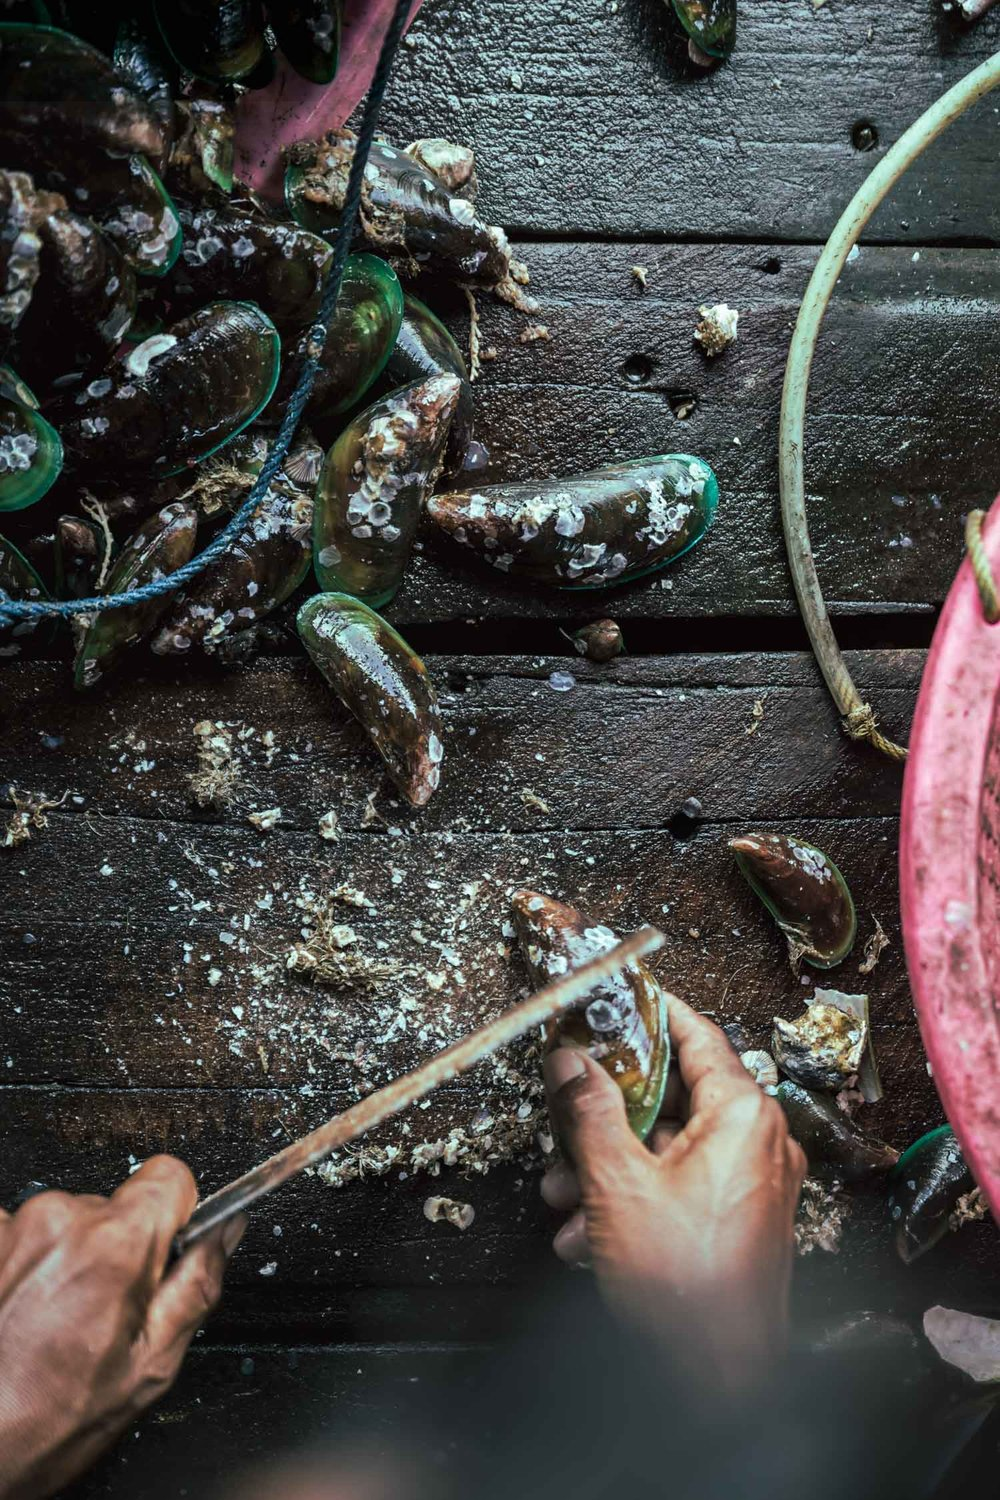 A lot of work goes behind the scenes before our seafood reaches our tables, such as the cleaning of mussels (scraping off barnacles) which has to be done individually and can be labour intensive.